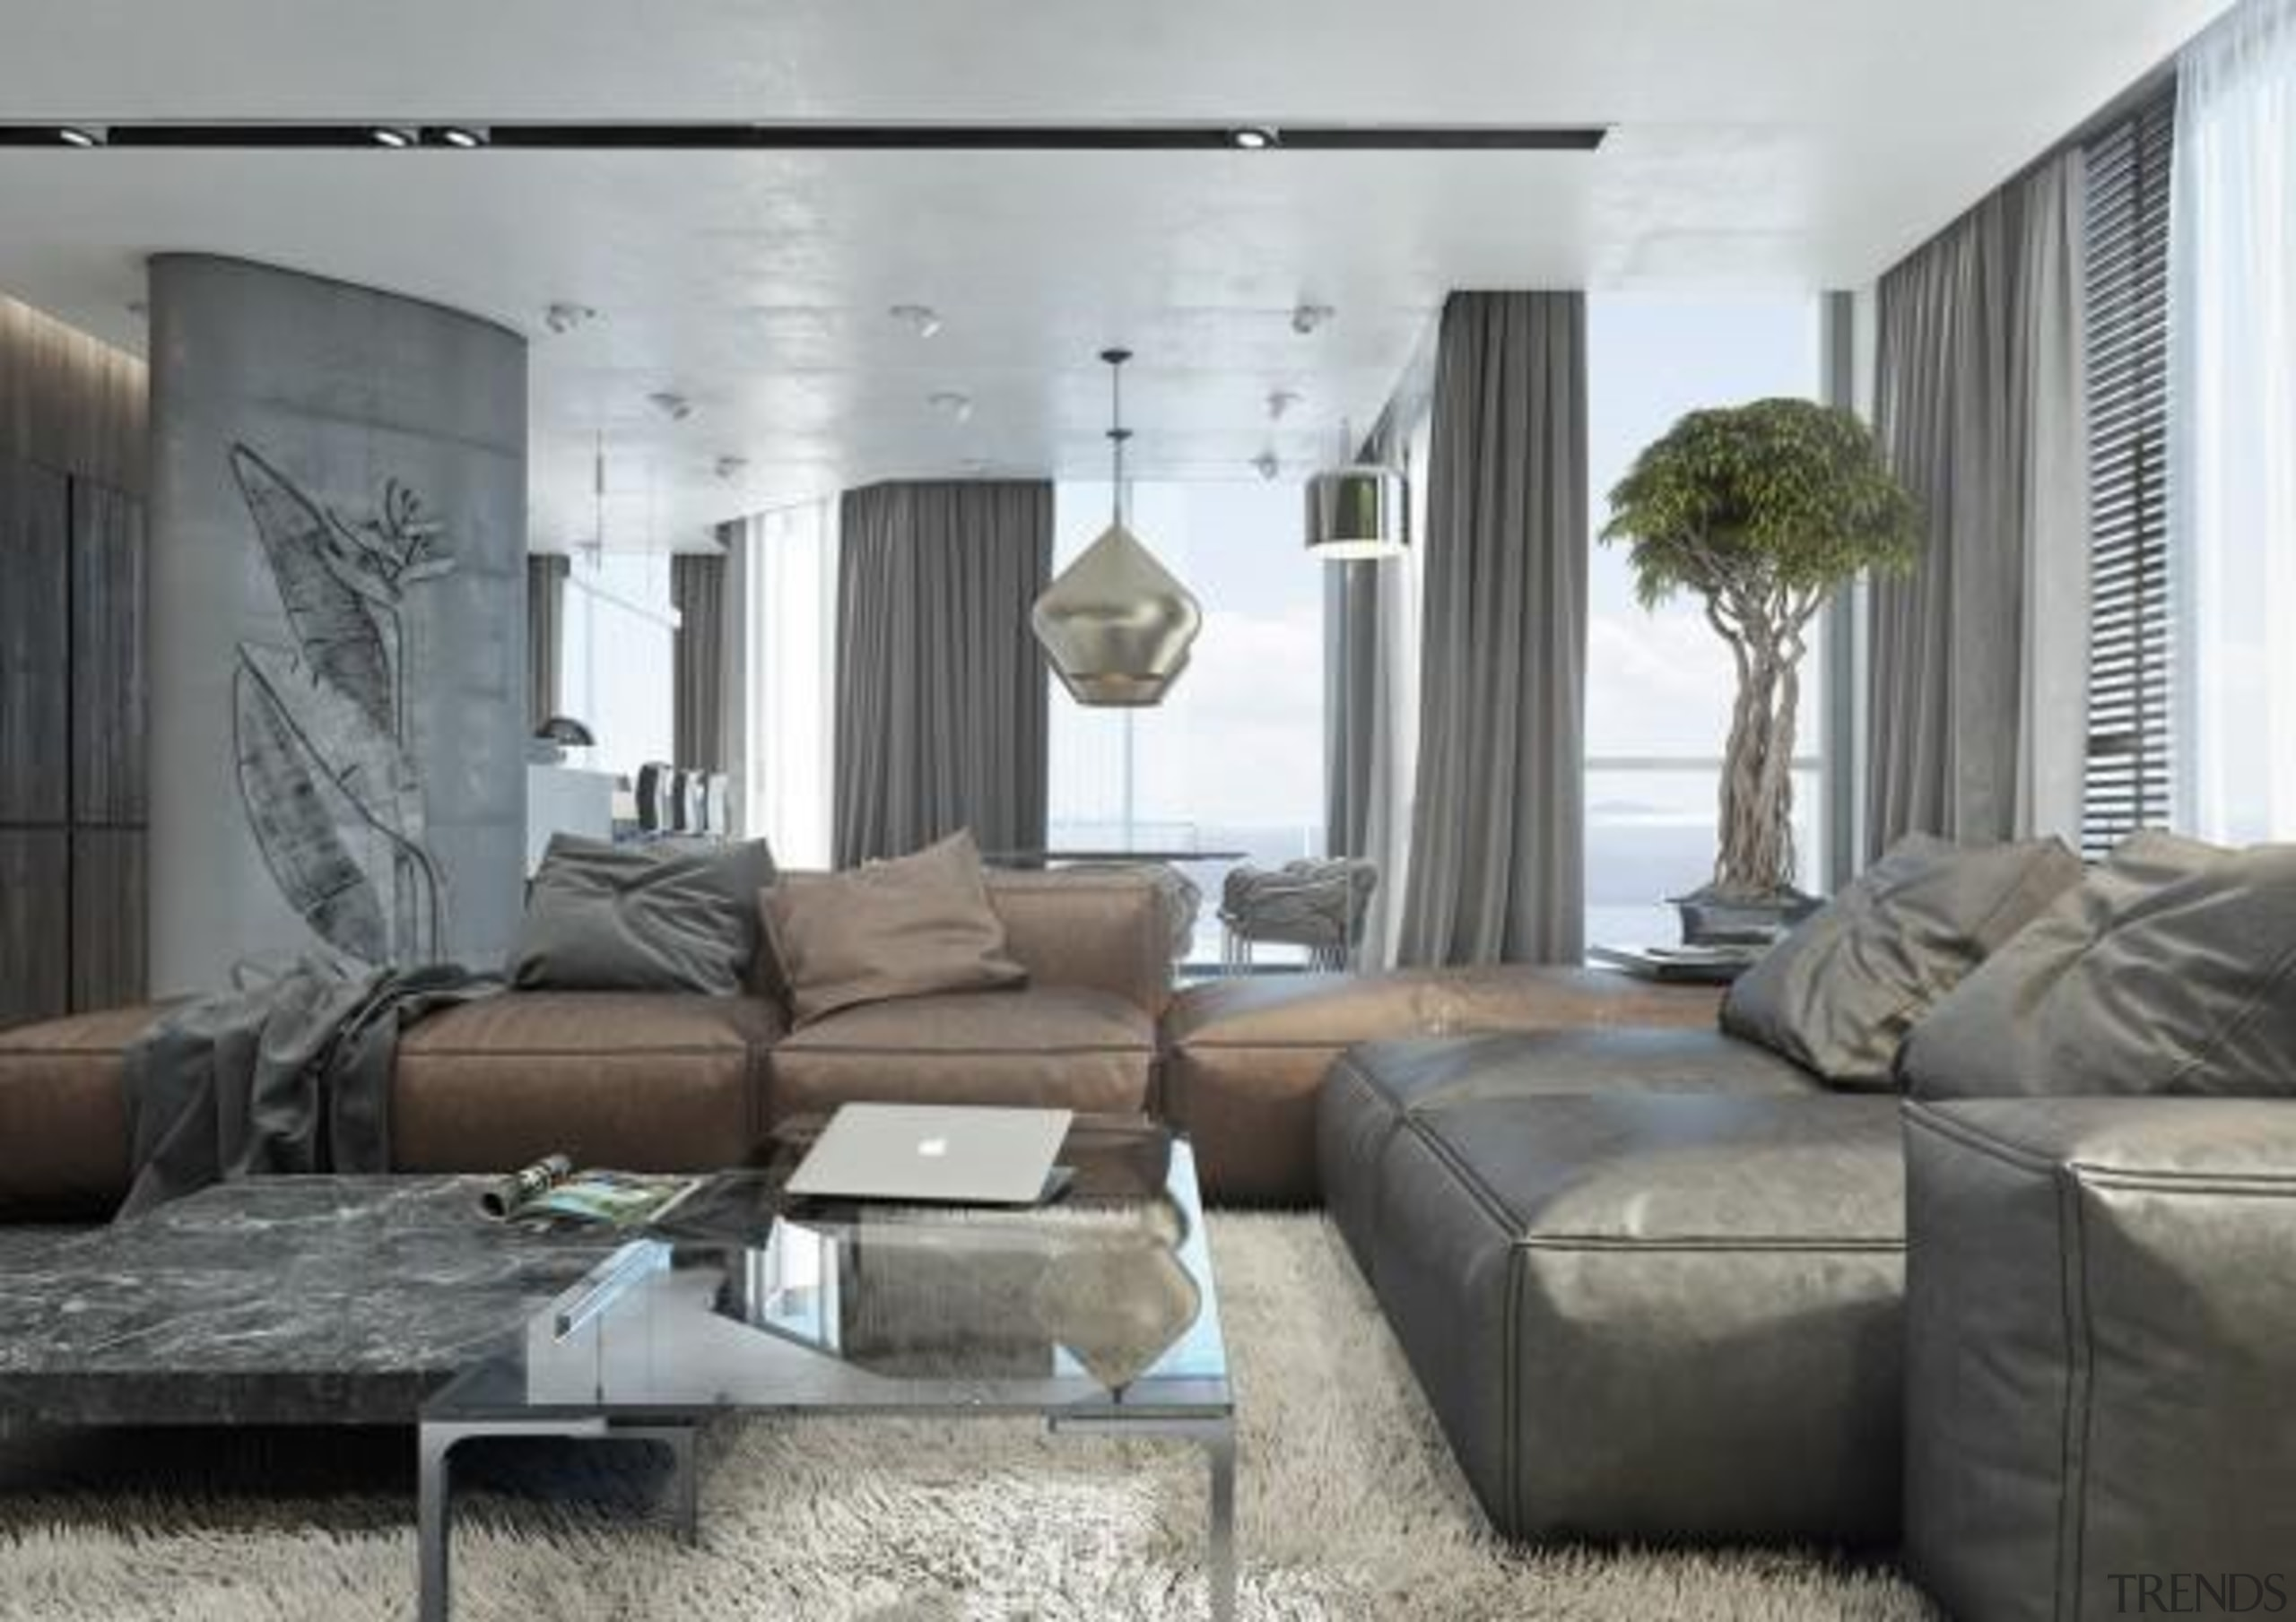 dark colored furnishings - Masculine Apartments - ceiling ceiling, couch, furniture, home, interior design, living room, property, wall, window treatment, gray, white